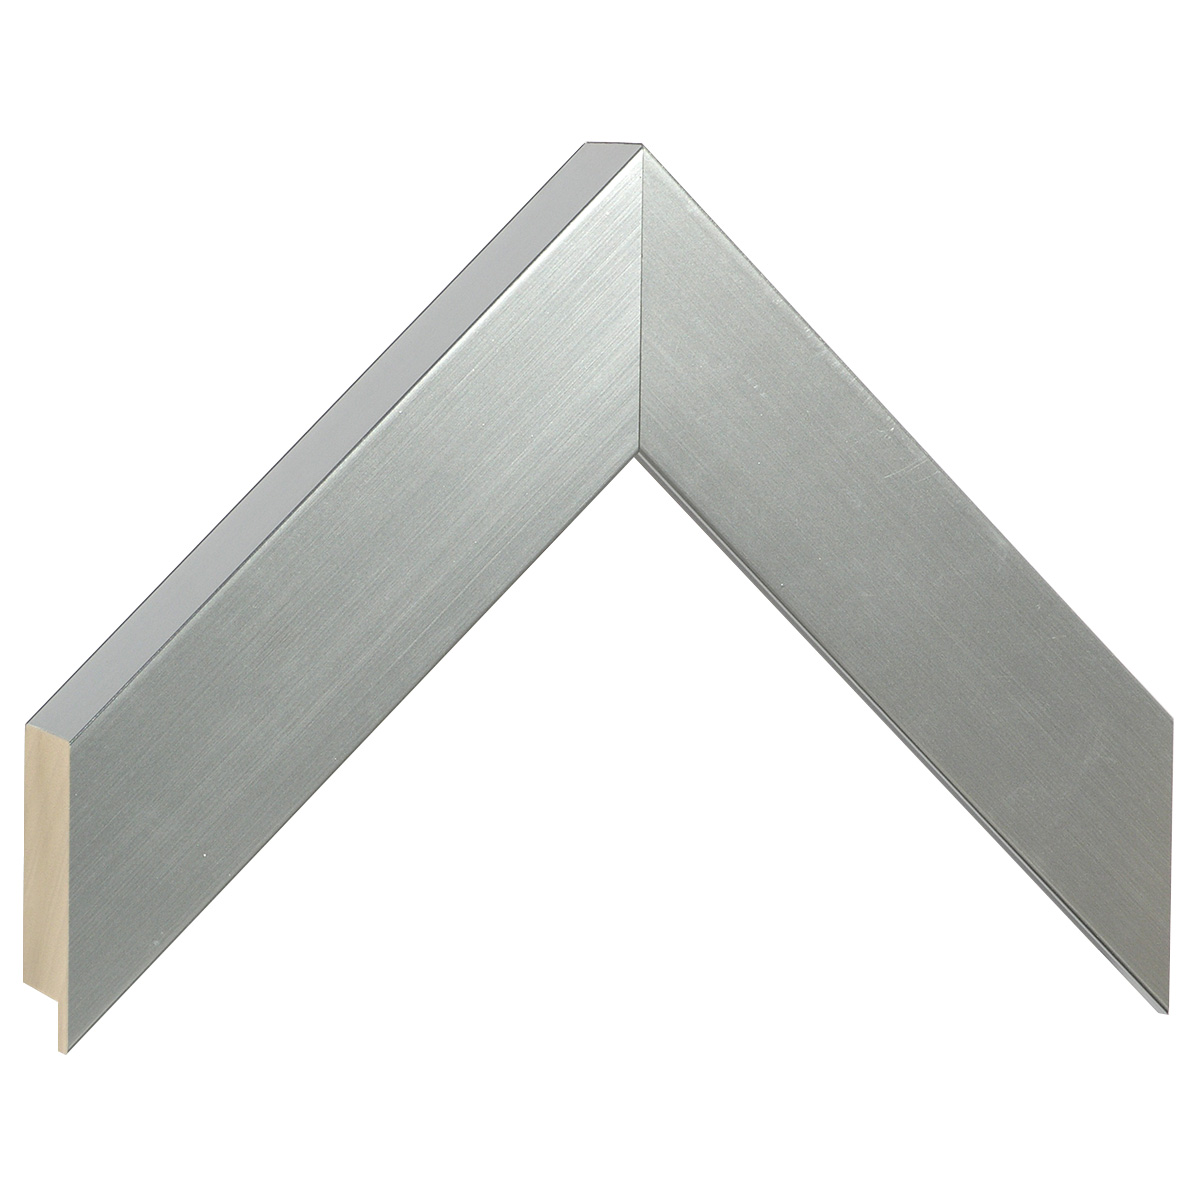 Moulding ayous, width 40mm height 32 - silver